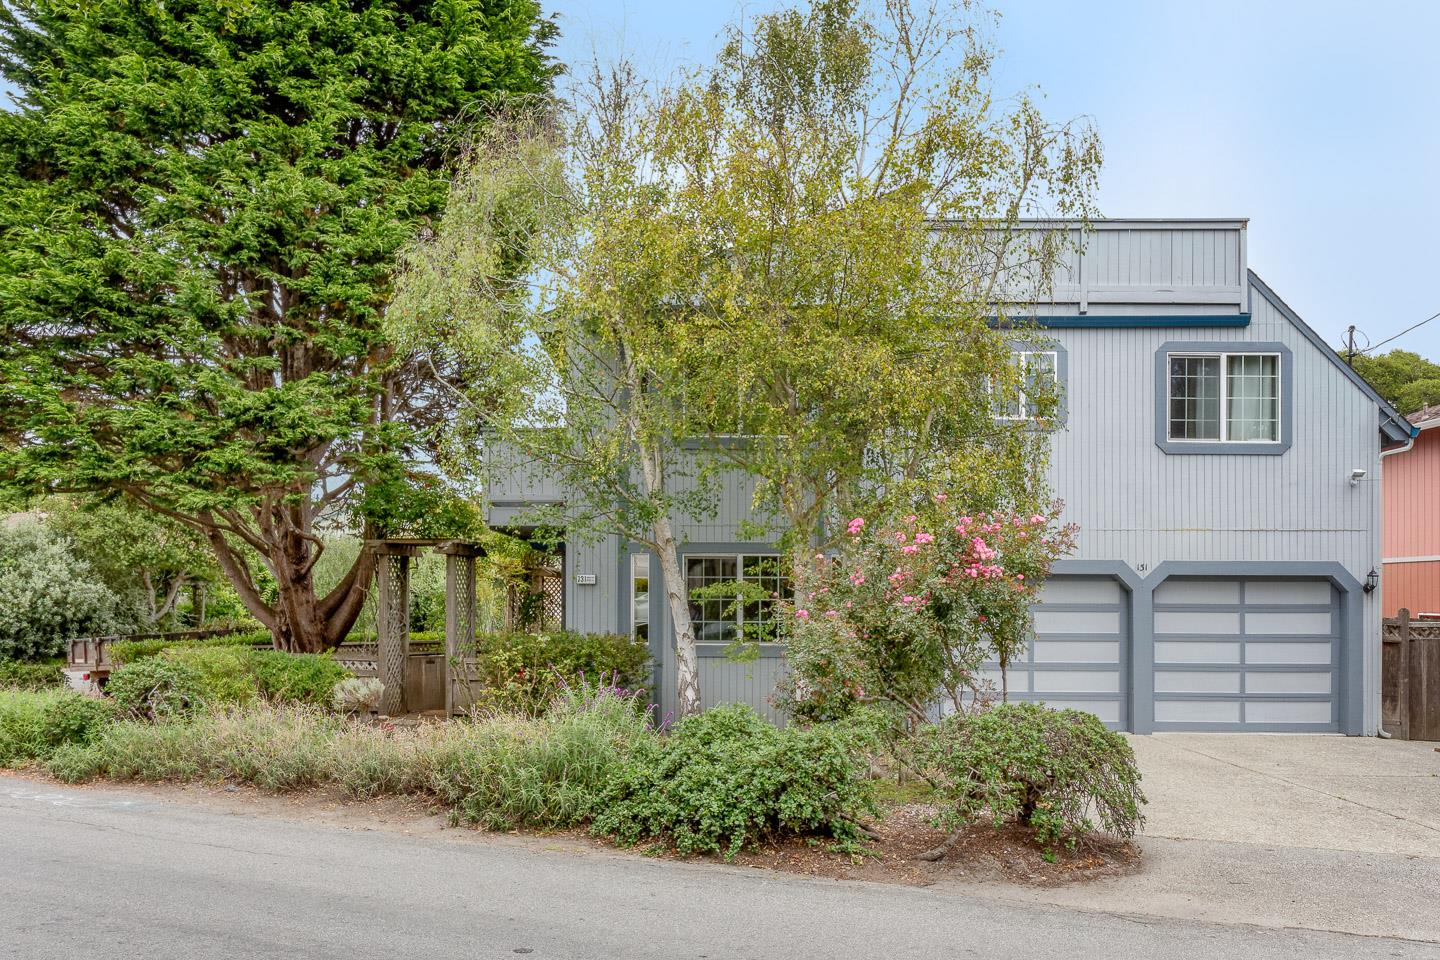 Situated in a fabulous Seacliff neighborhood, this custom designed home offers a light & bright interior featuring hardwood floors, abundant windows & skylights, eat-in kitchen w/corian counters, ample cabinet & counter space, large pantry, breakfast bar, plus dining room. The living room has vaulted ceilings, skylights & Vermont Castings wood stove. The master suite features a vaulted ceiling w/clerestory windows, a large walk-in closet & private deck. The downstairs bedroom has French doors to the backyard. Laundry room has a full bathroom & new custom tile shower & floor. Home gym in garage. There is a patio, fenced backyard & a rooftop deck w/a peek of the bay & surrounding hills. The home is located on a quiet street walking distance to Seacliff Village & the expansive sands of Seacliff State Beach. Recent upgrades include some new light fixtures, light switches, faucets, toilets & showerheads. Good separation of space to work from home.